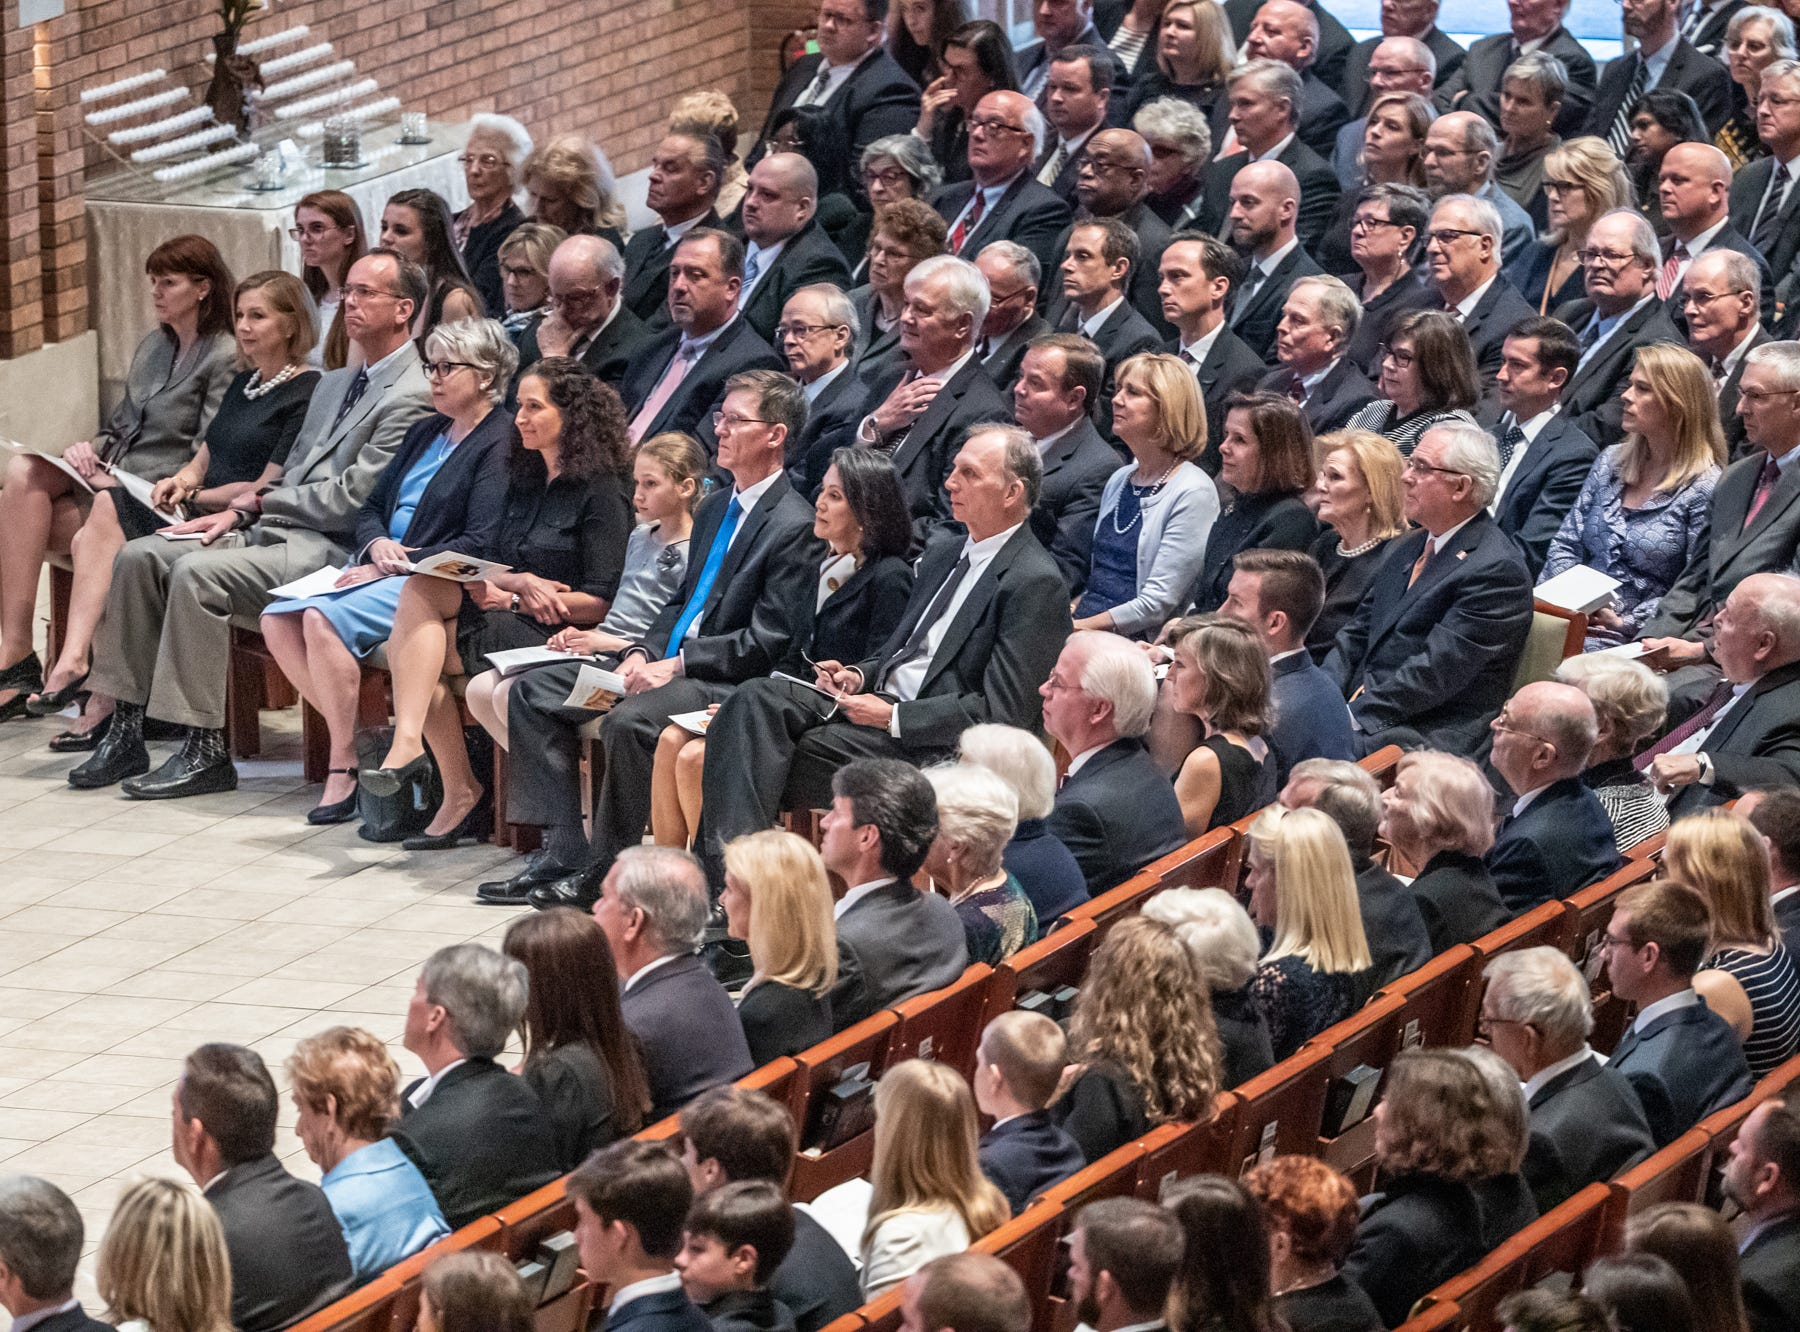 Guests pay tribute to former U.S. Sen. Richard Lugar during a memorial service held at Saint Luke's United Methodist Church in Indianapolis, on Wednesday, May 15, 2019. Lugar served as mayor of Indianapolis from 1968 to 1975 and U.S. senator from 1977 to 2013. He died April 28, 2019, at the age of 87.